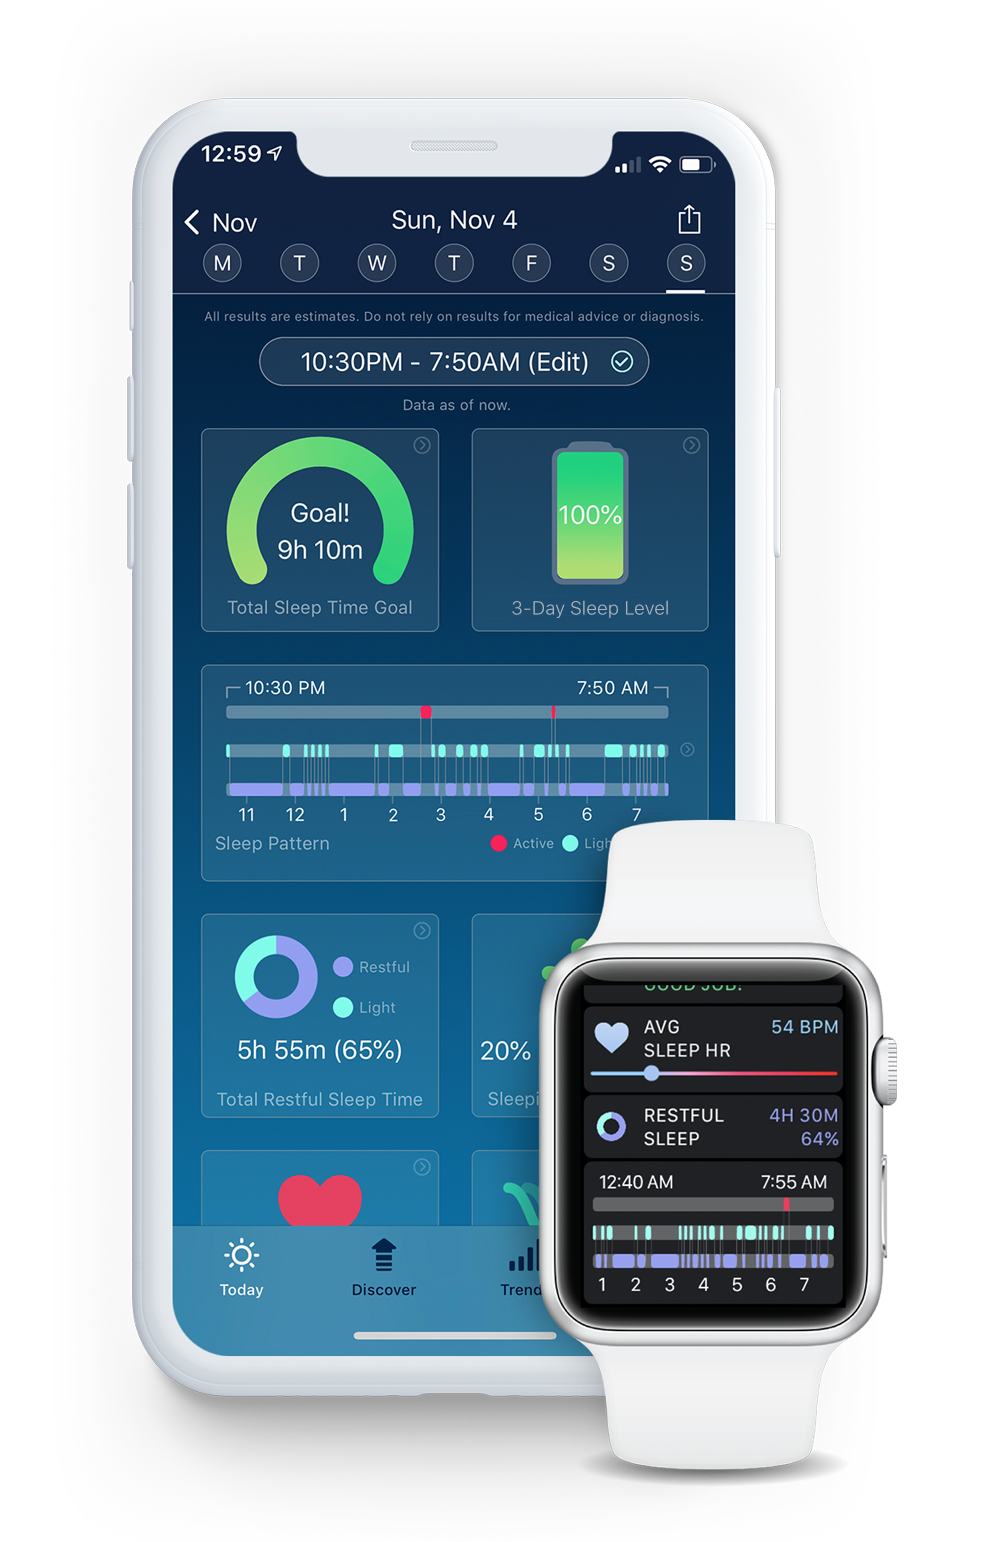 SleepWatch by Bodymatter on iPhone and Apple Watch